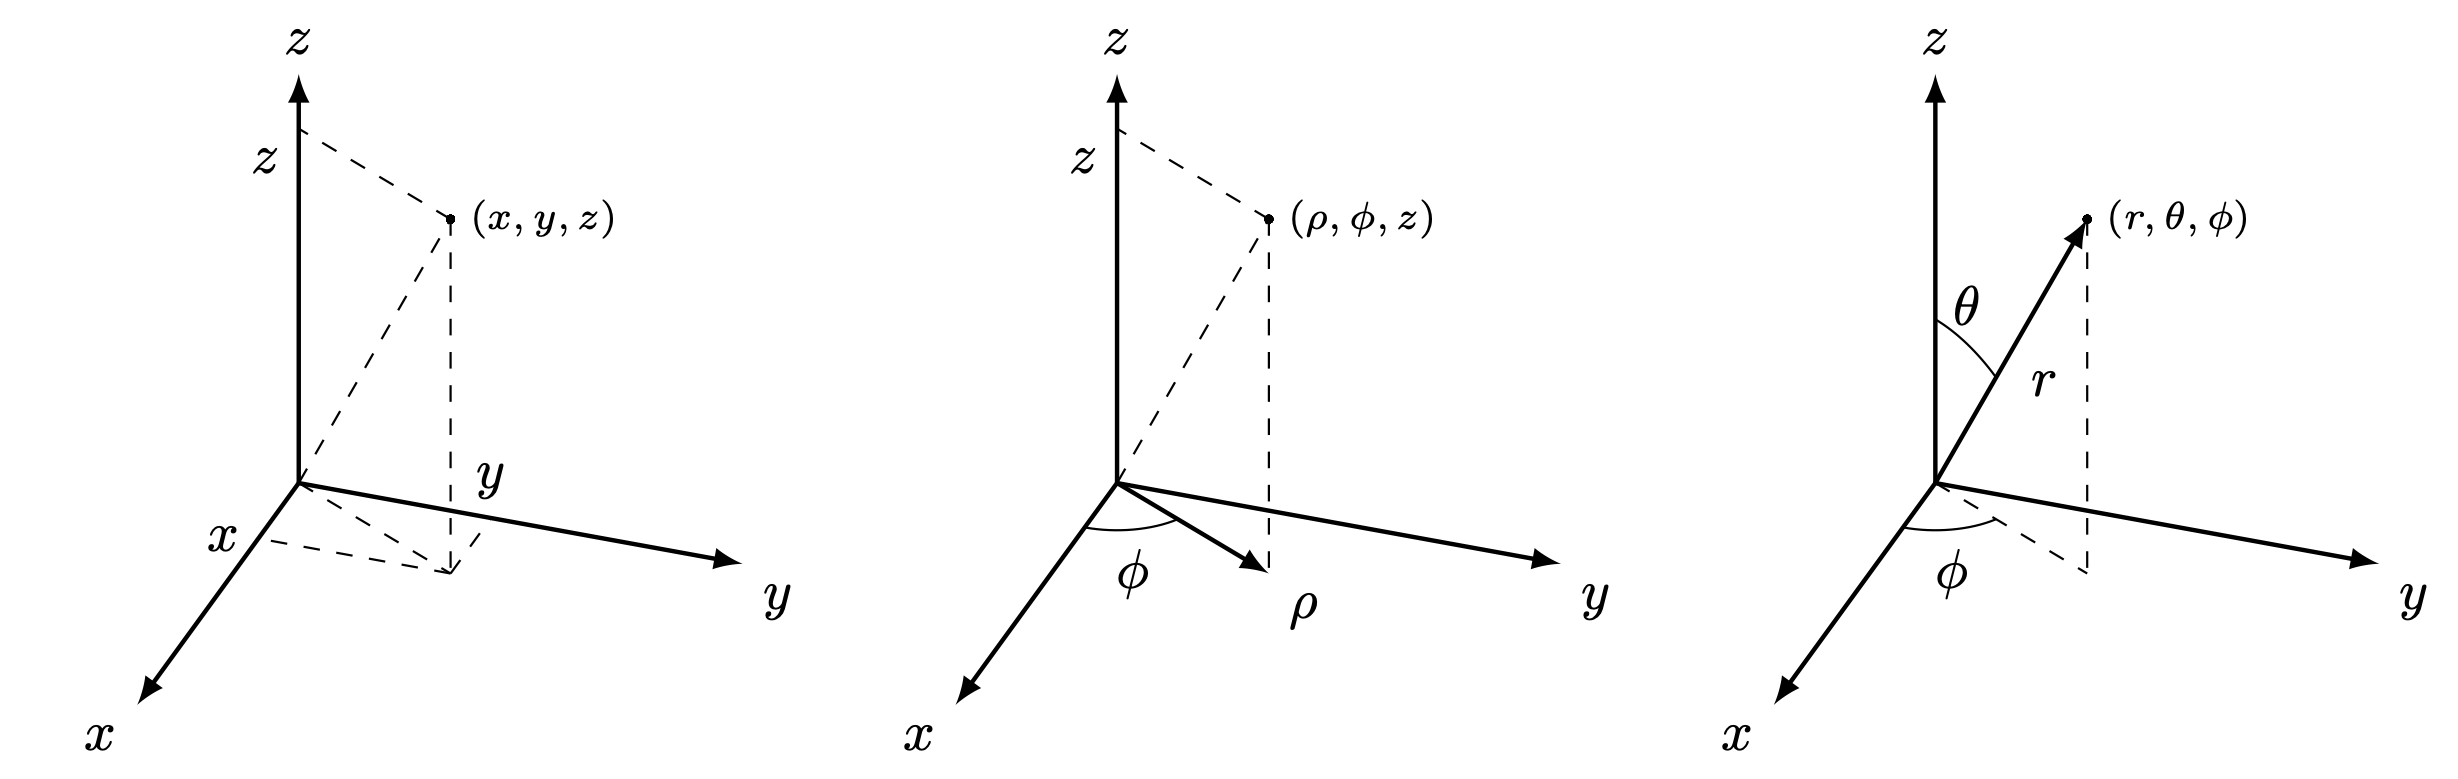 main-coordinate-systems